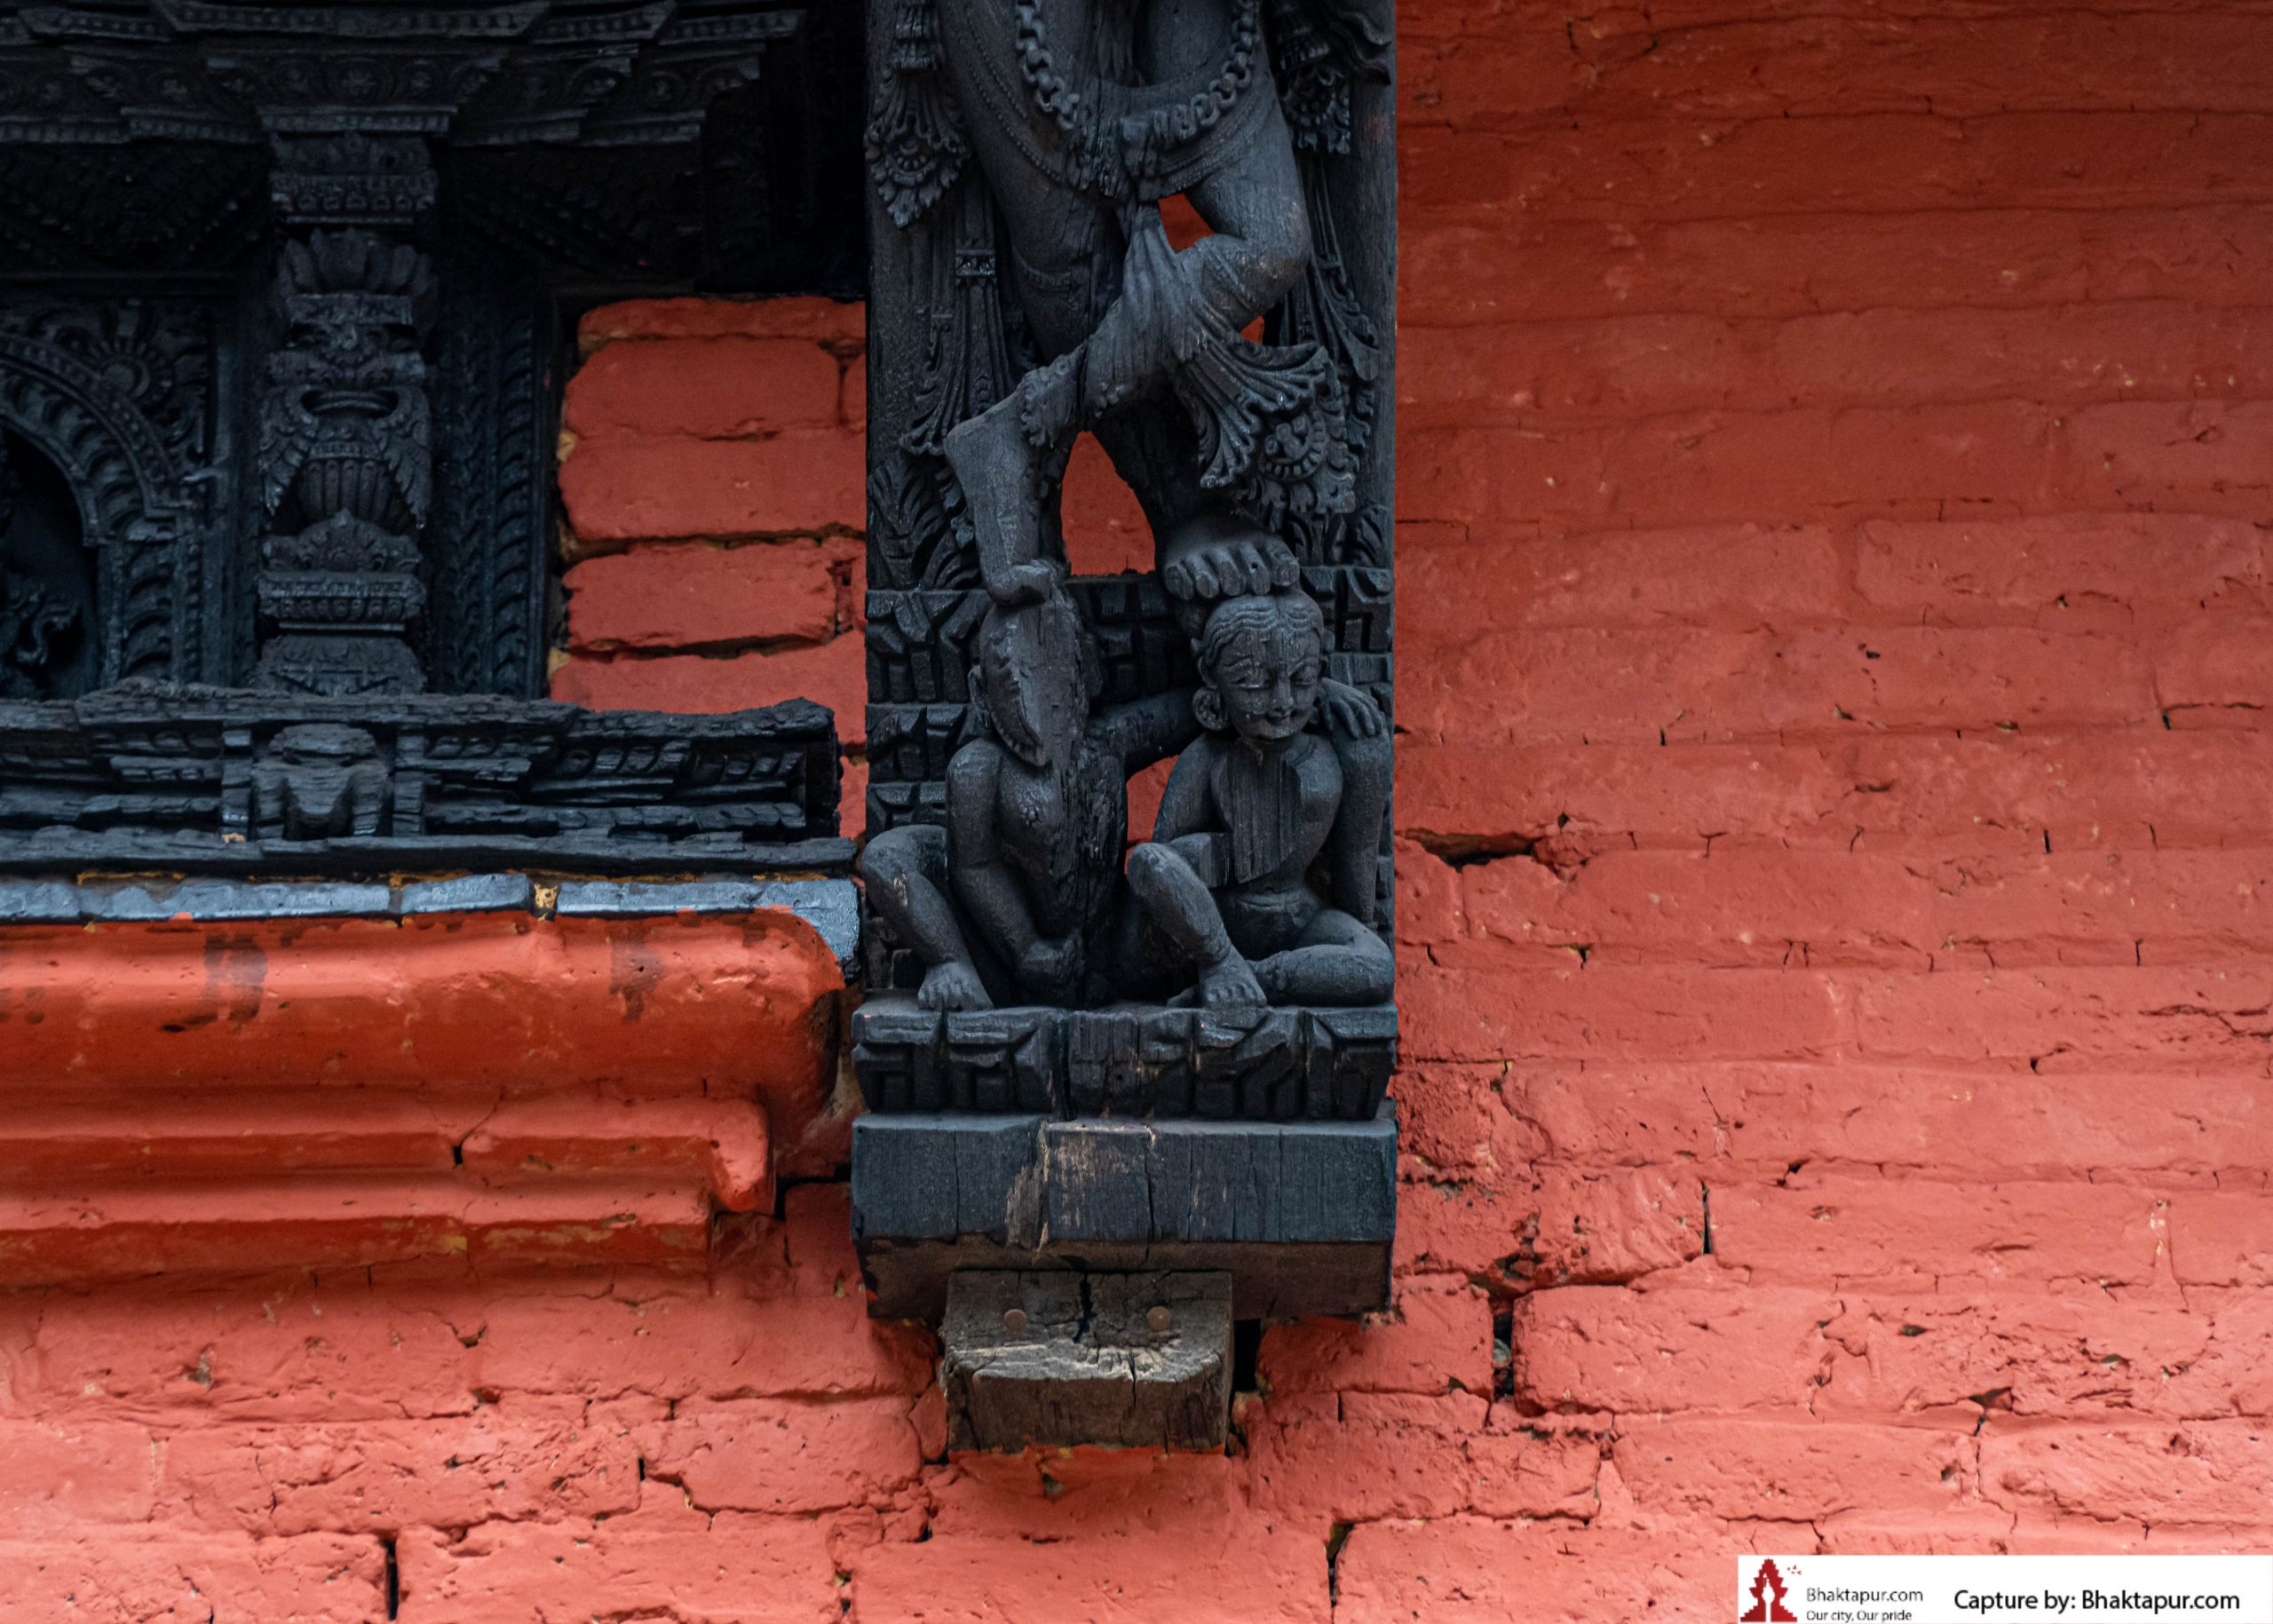 https://www.bhaktapur.com/wp-content/uploads/2021/08/erotic-carving-68-of-137-scaled.jpg